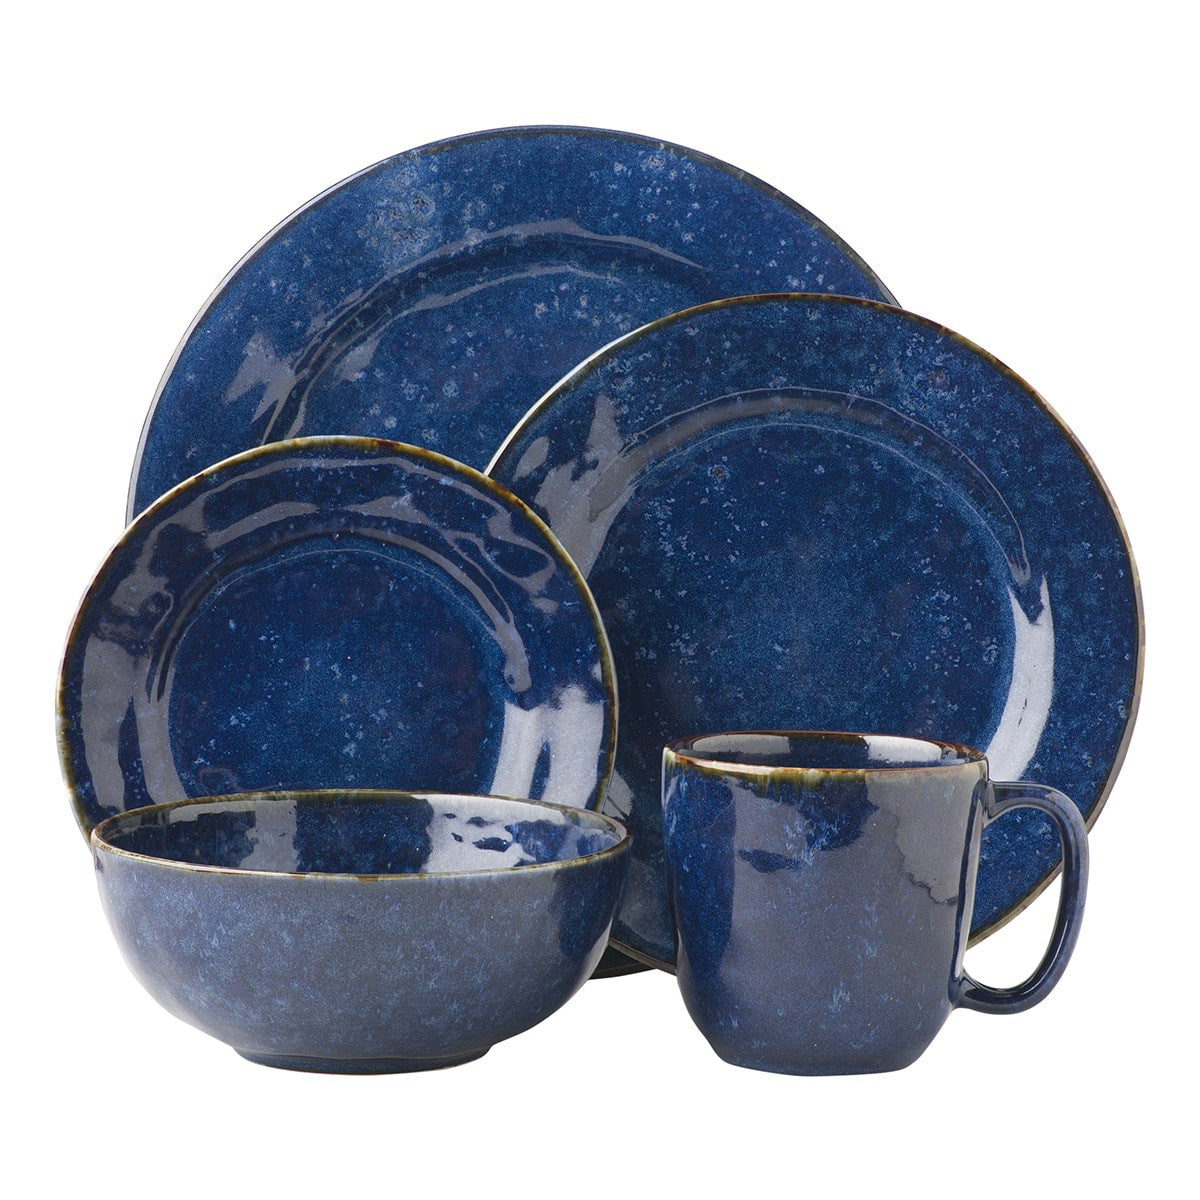 Puro Dappled Cobalt Dinnerware